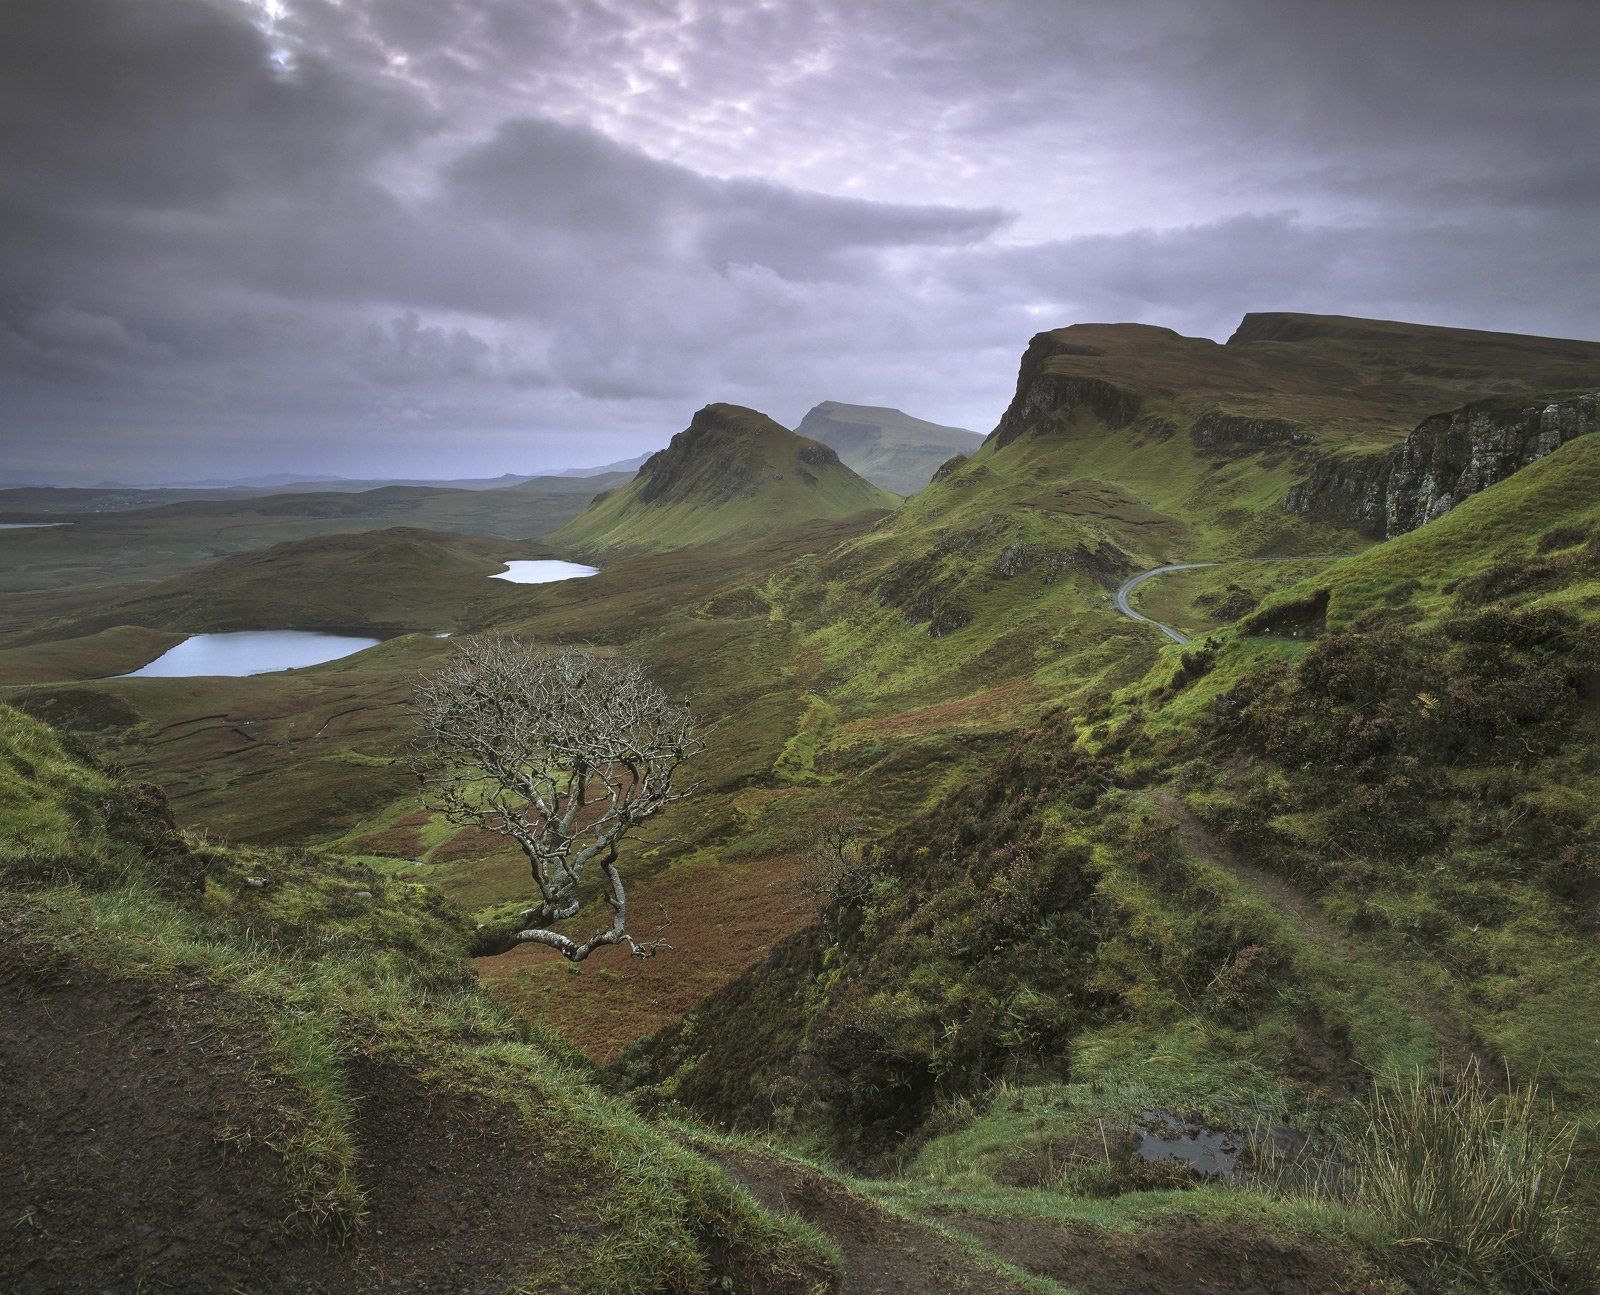 Precarious Footing, Quiraing, Skye, Scotland, iconic, view, overhanging, tree, cliff, sombre, mood, brooding, clouds, gl, photo